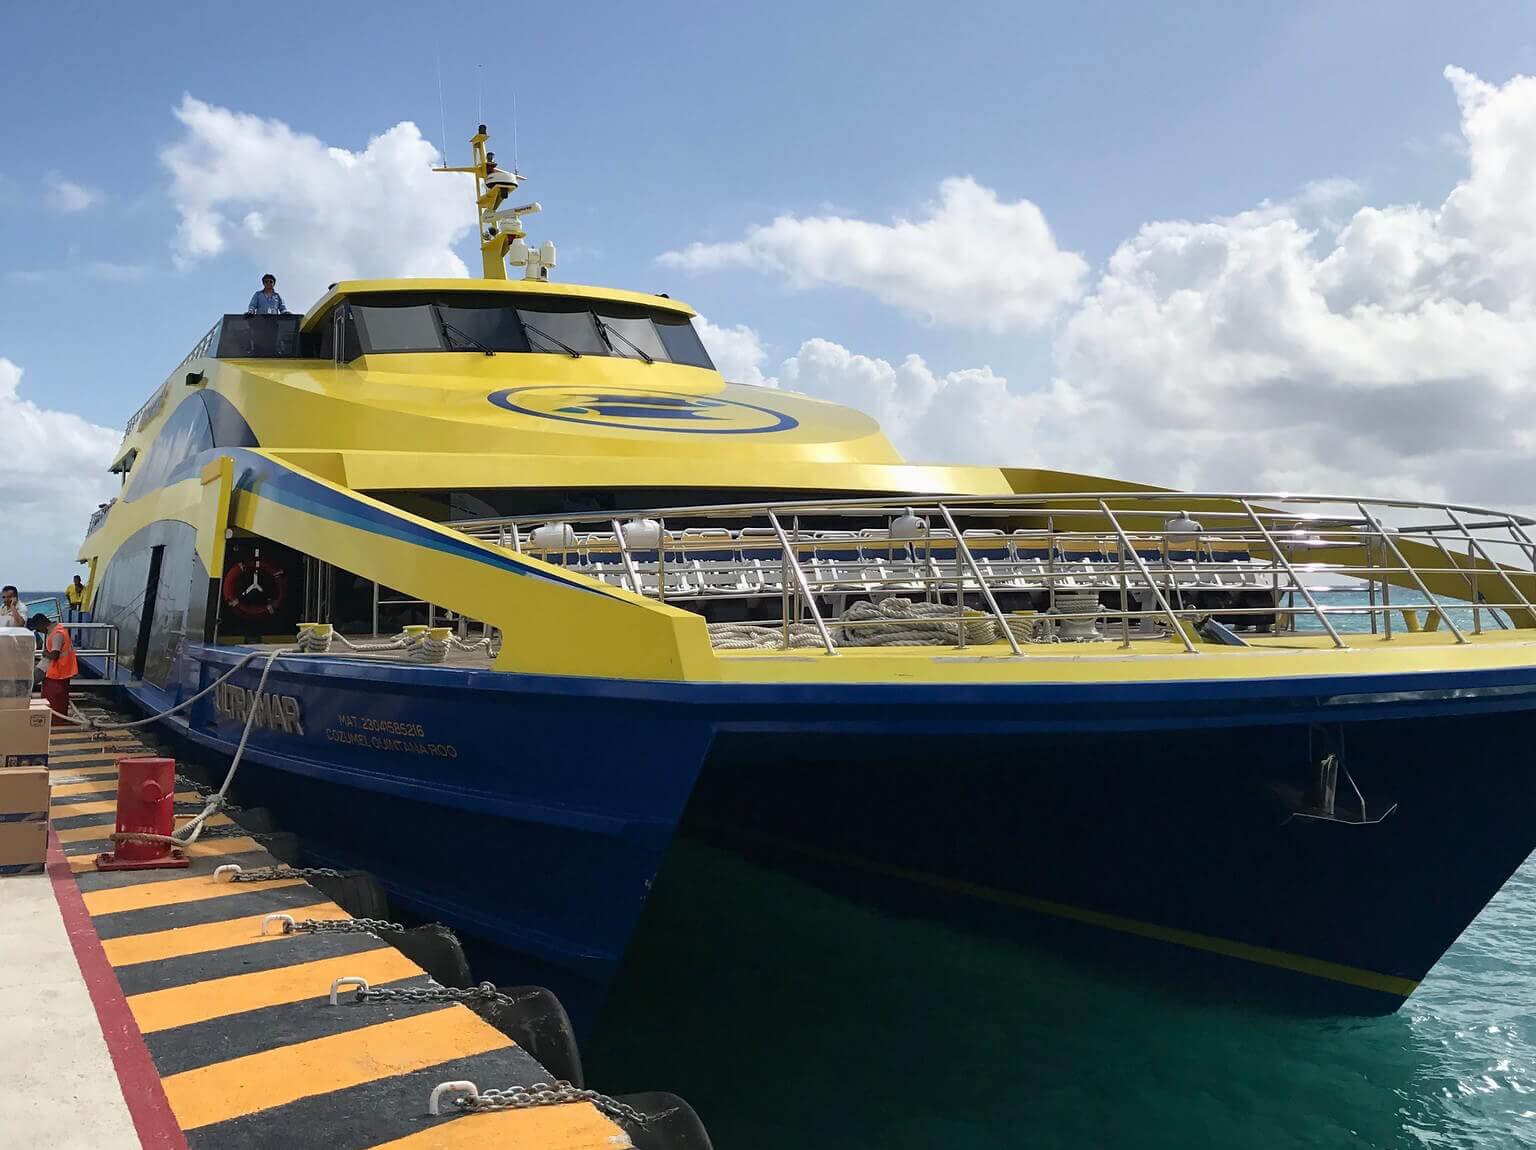 Cozumel, Mexico. Ultramar Ferry